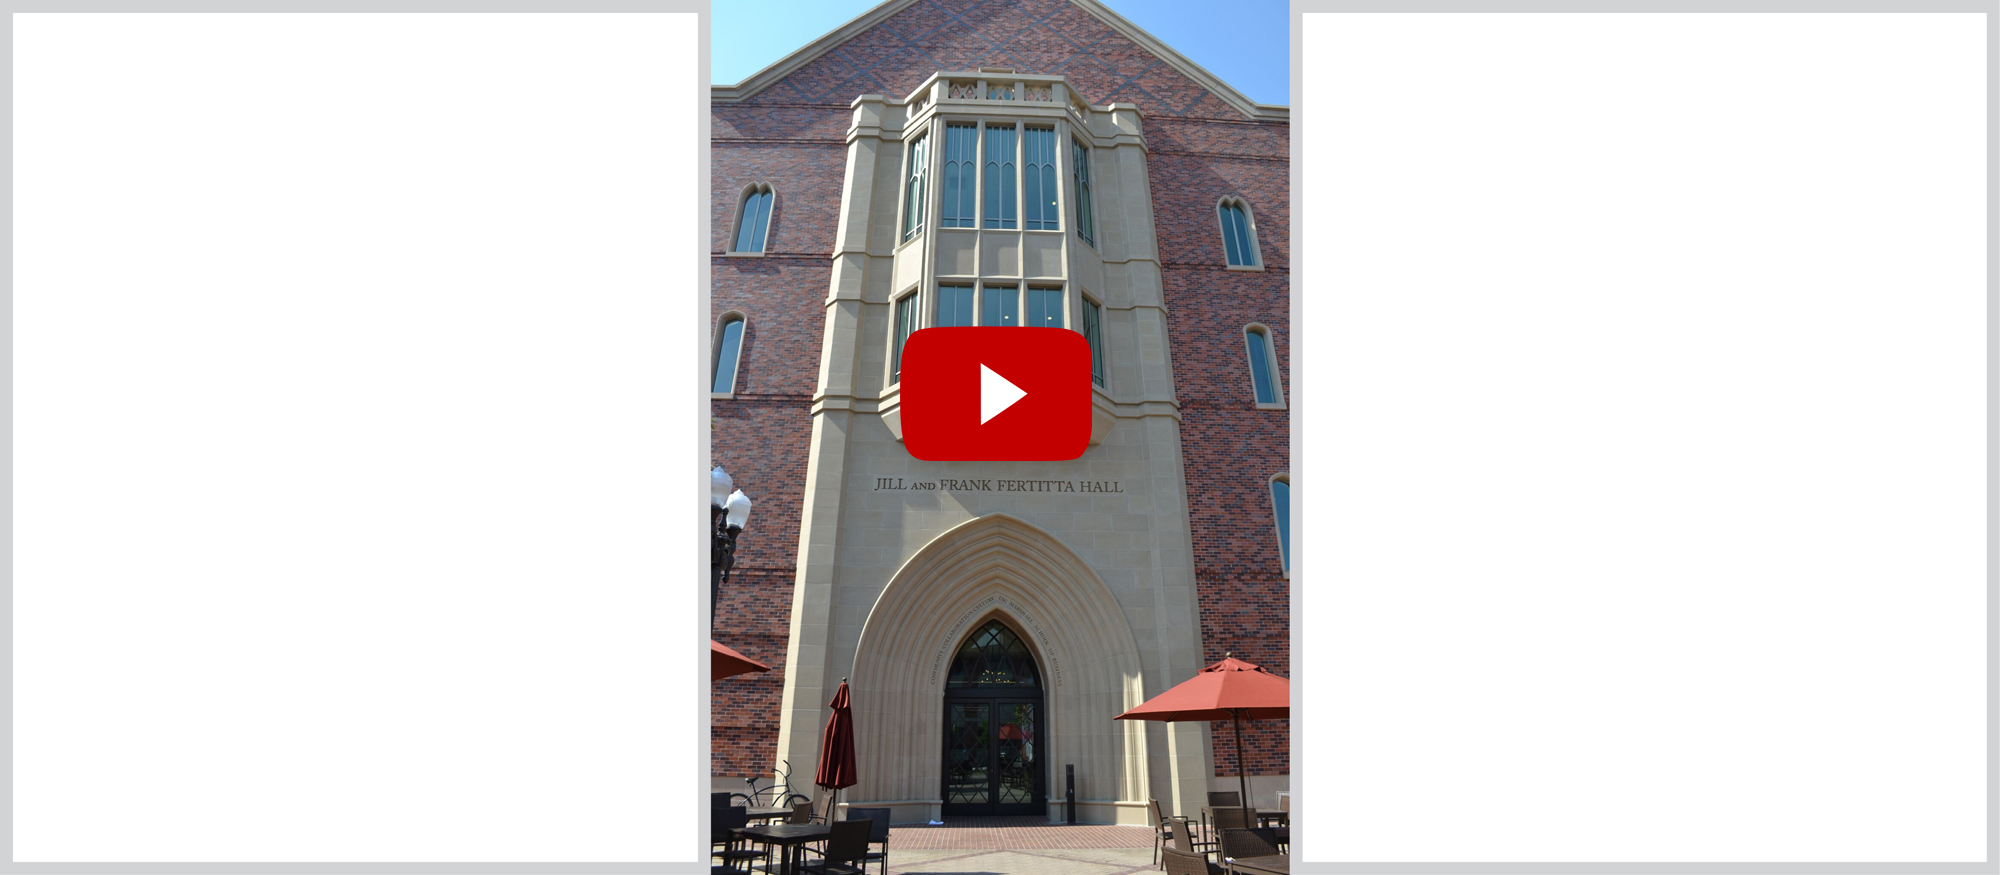 USC Fertitta Hall | Custom Design, Manufacturing of Architectural Stone | Built-in Pre-engineered Connections | Learn More about the Design Process: Video >>